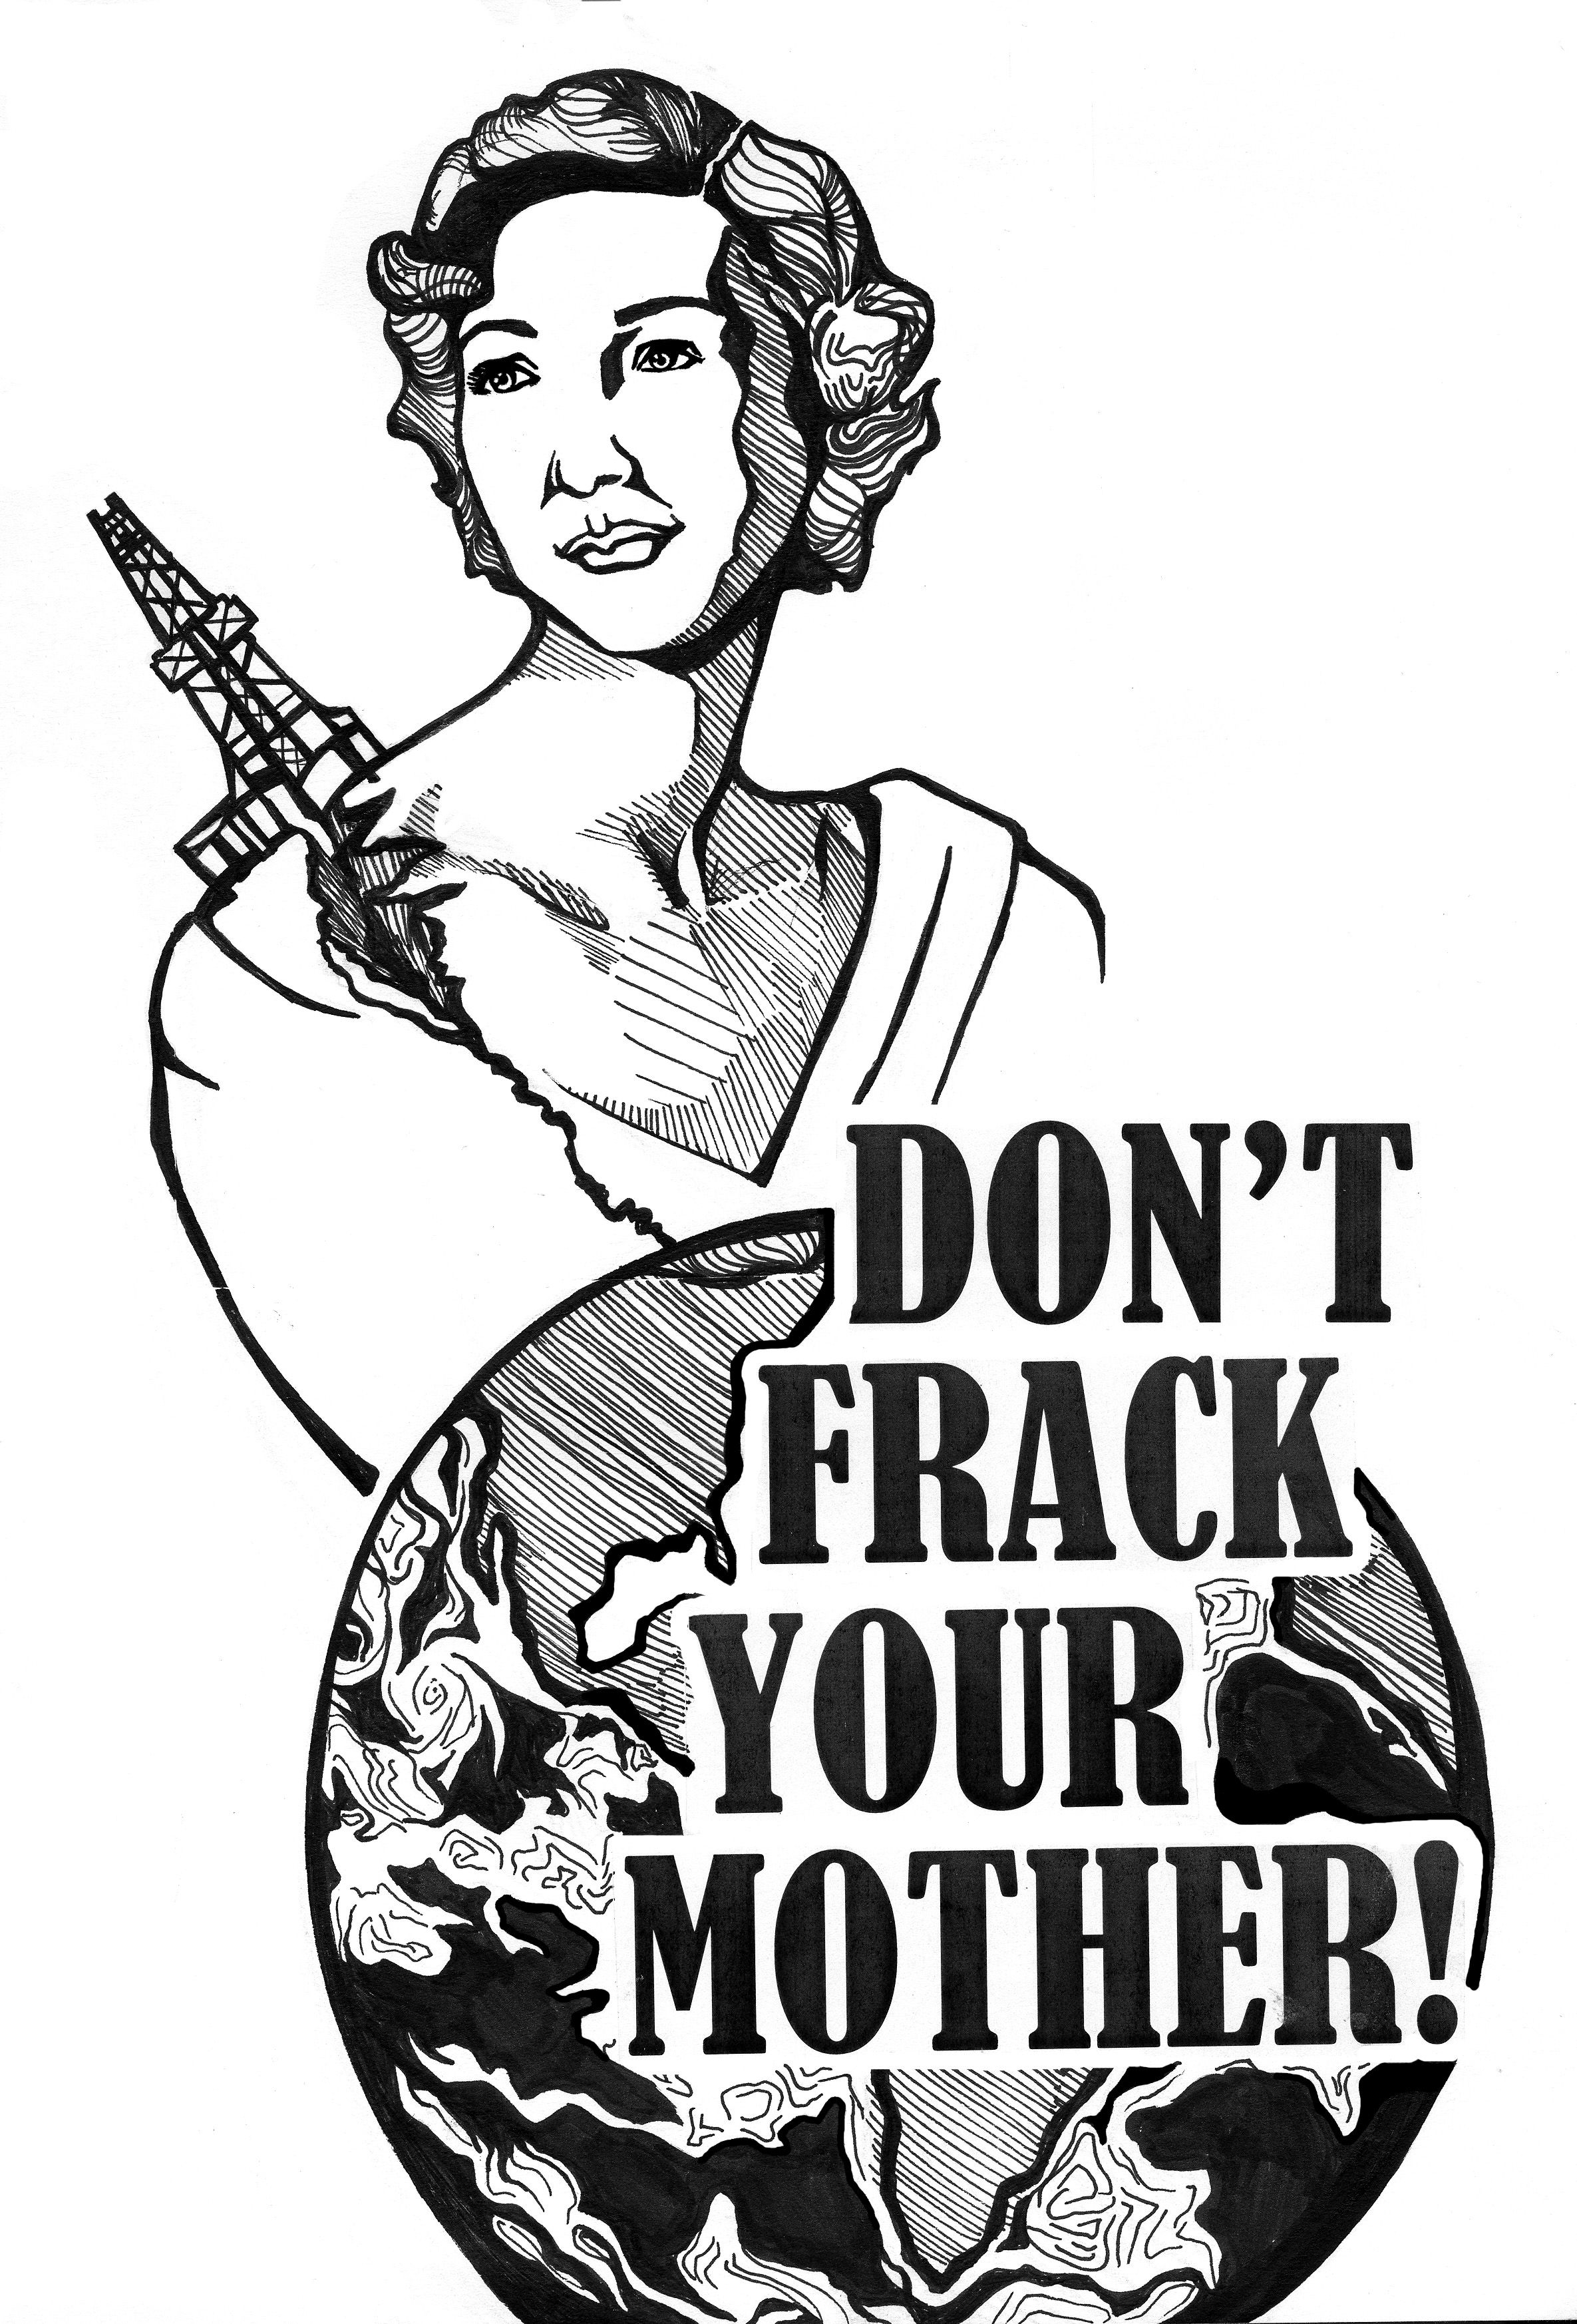 Earthworks Hydraulic Fracturing 101 Ecofeminist Protest Posters International Womens Day